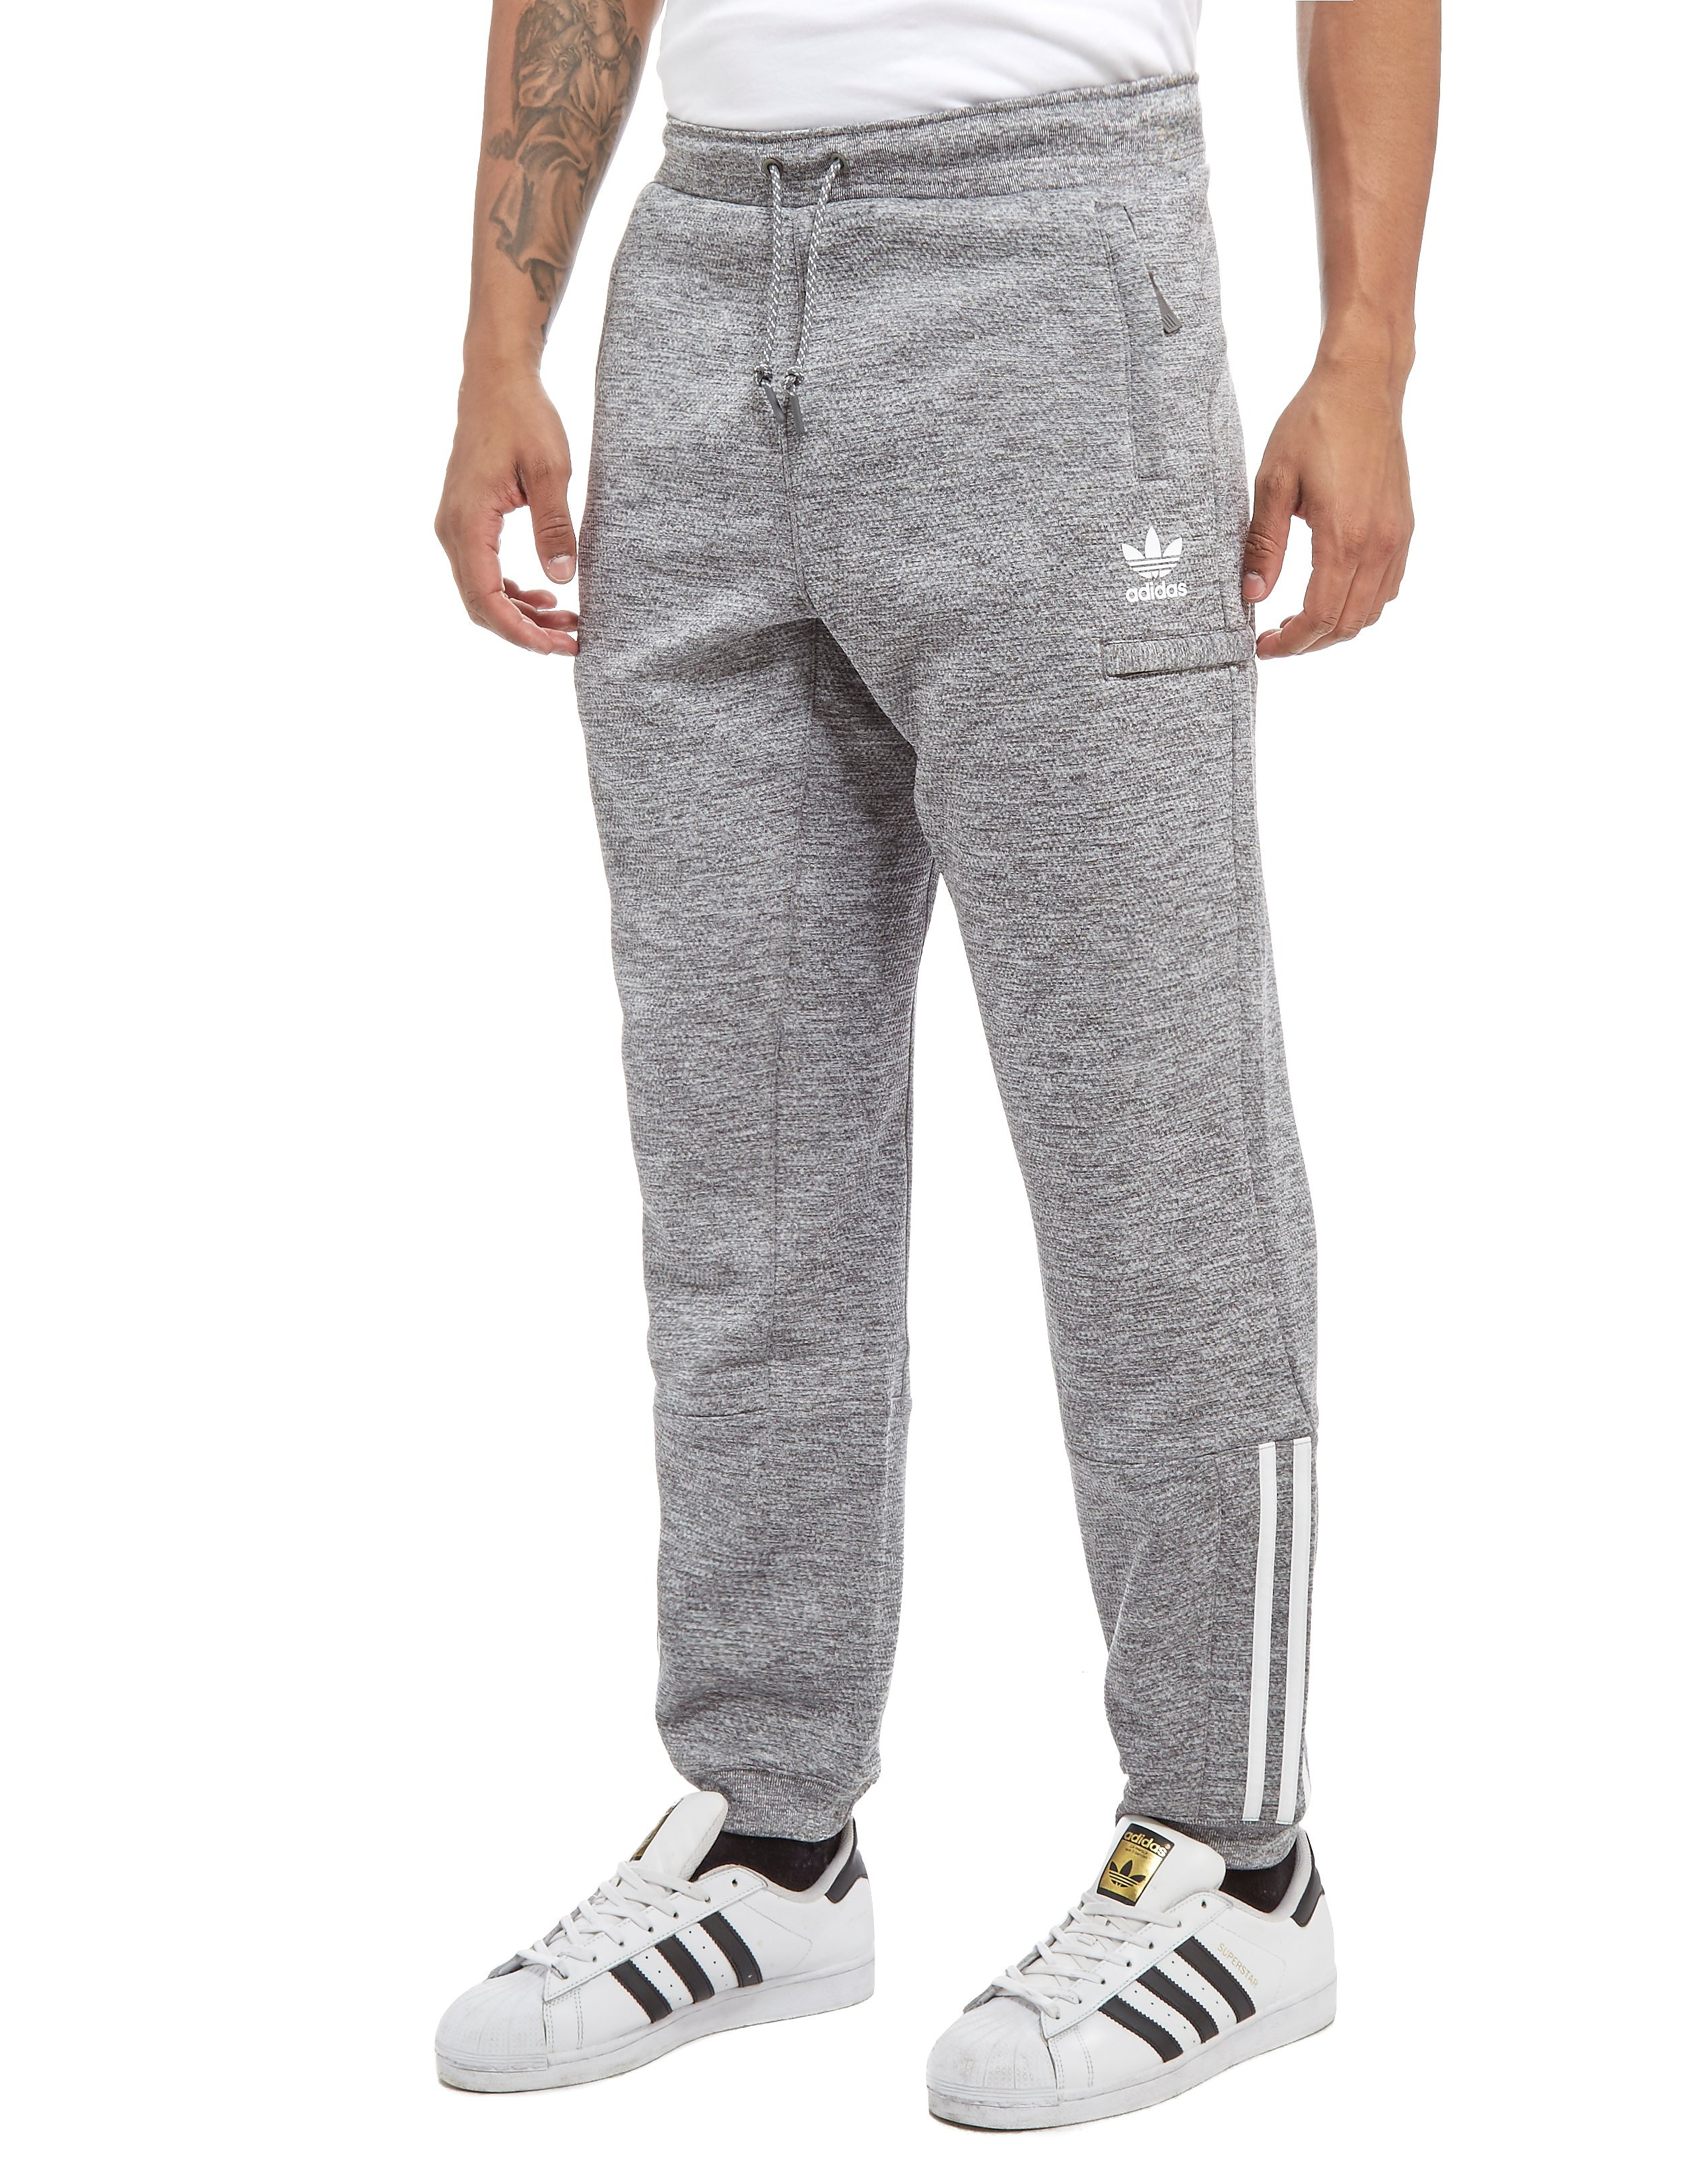 adidas Originals Nova Polyester Pants